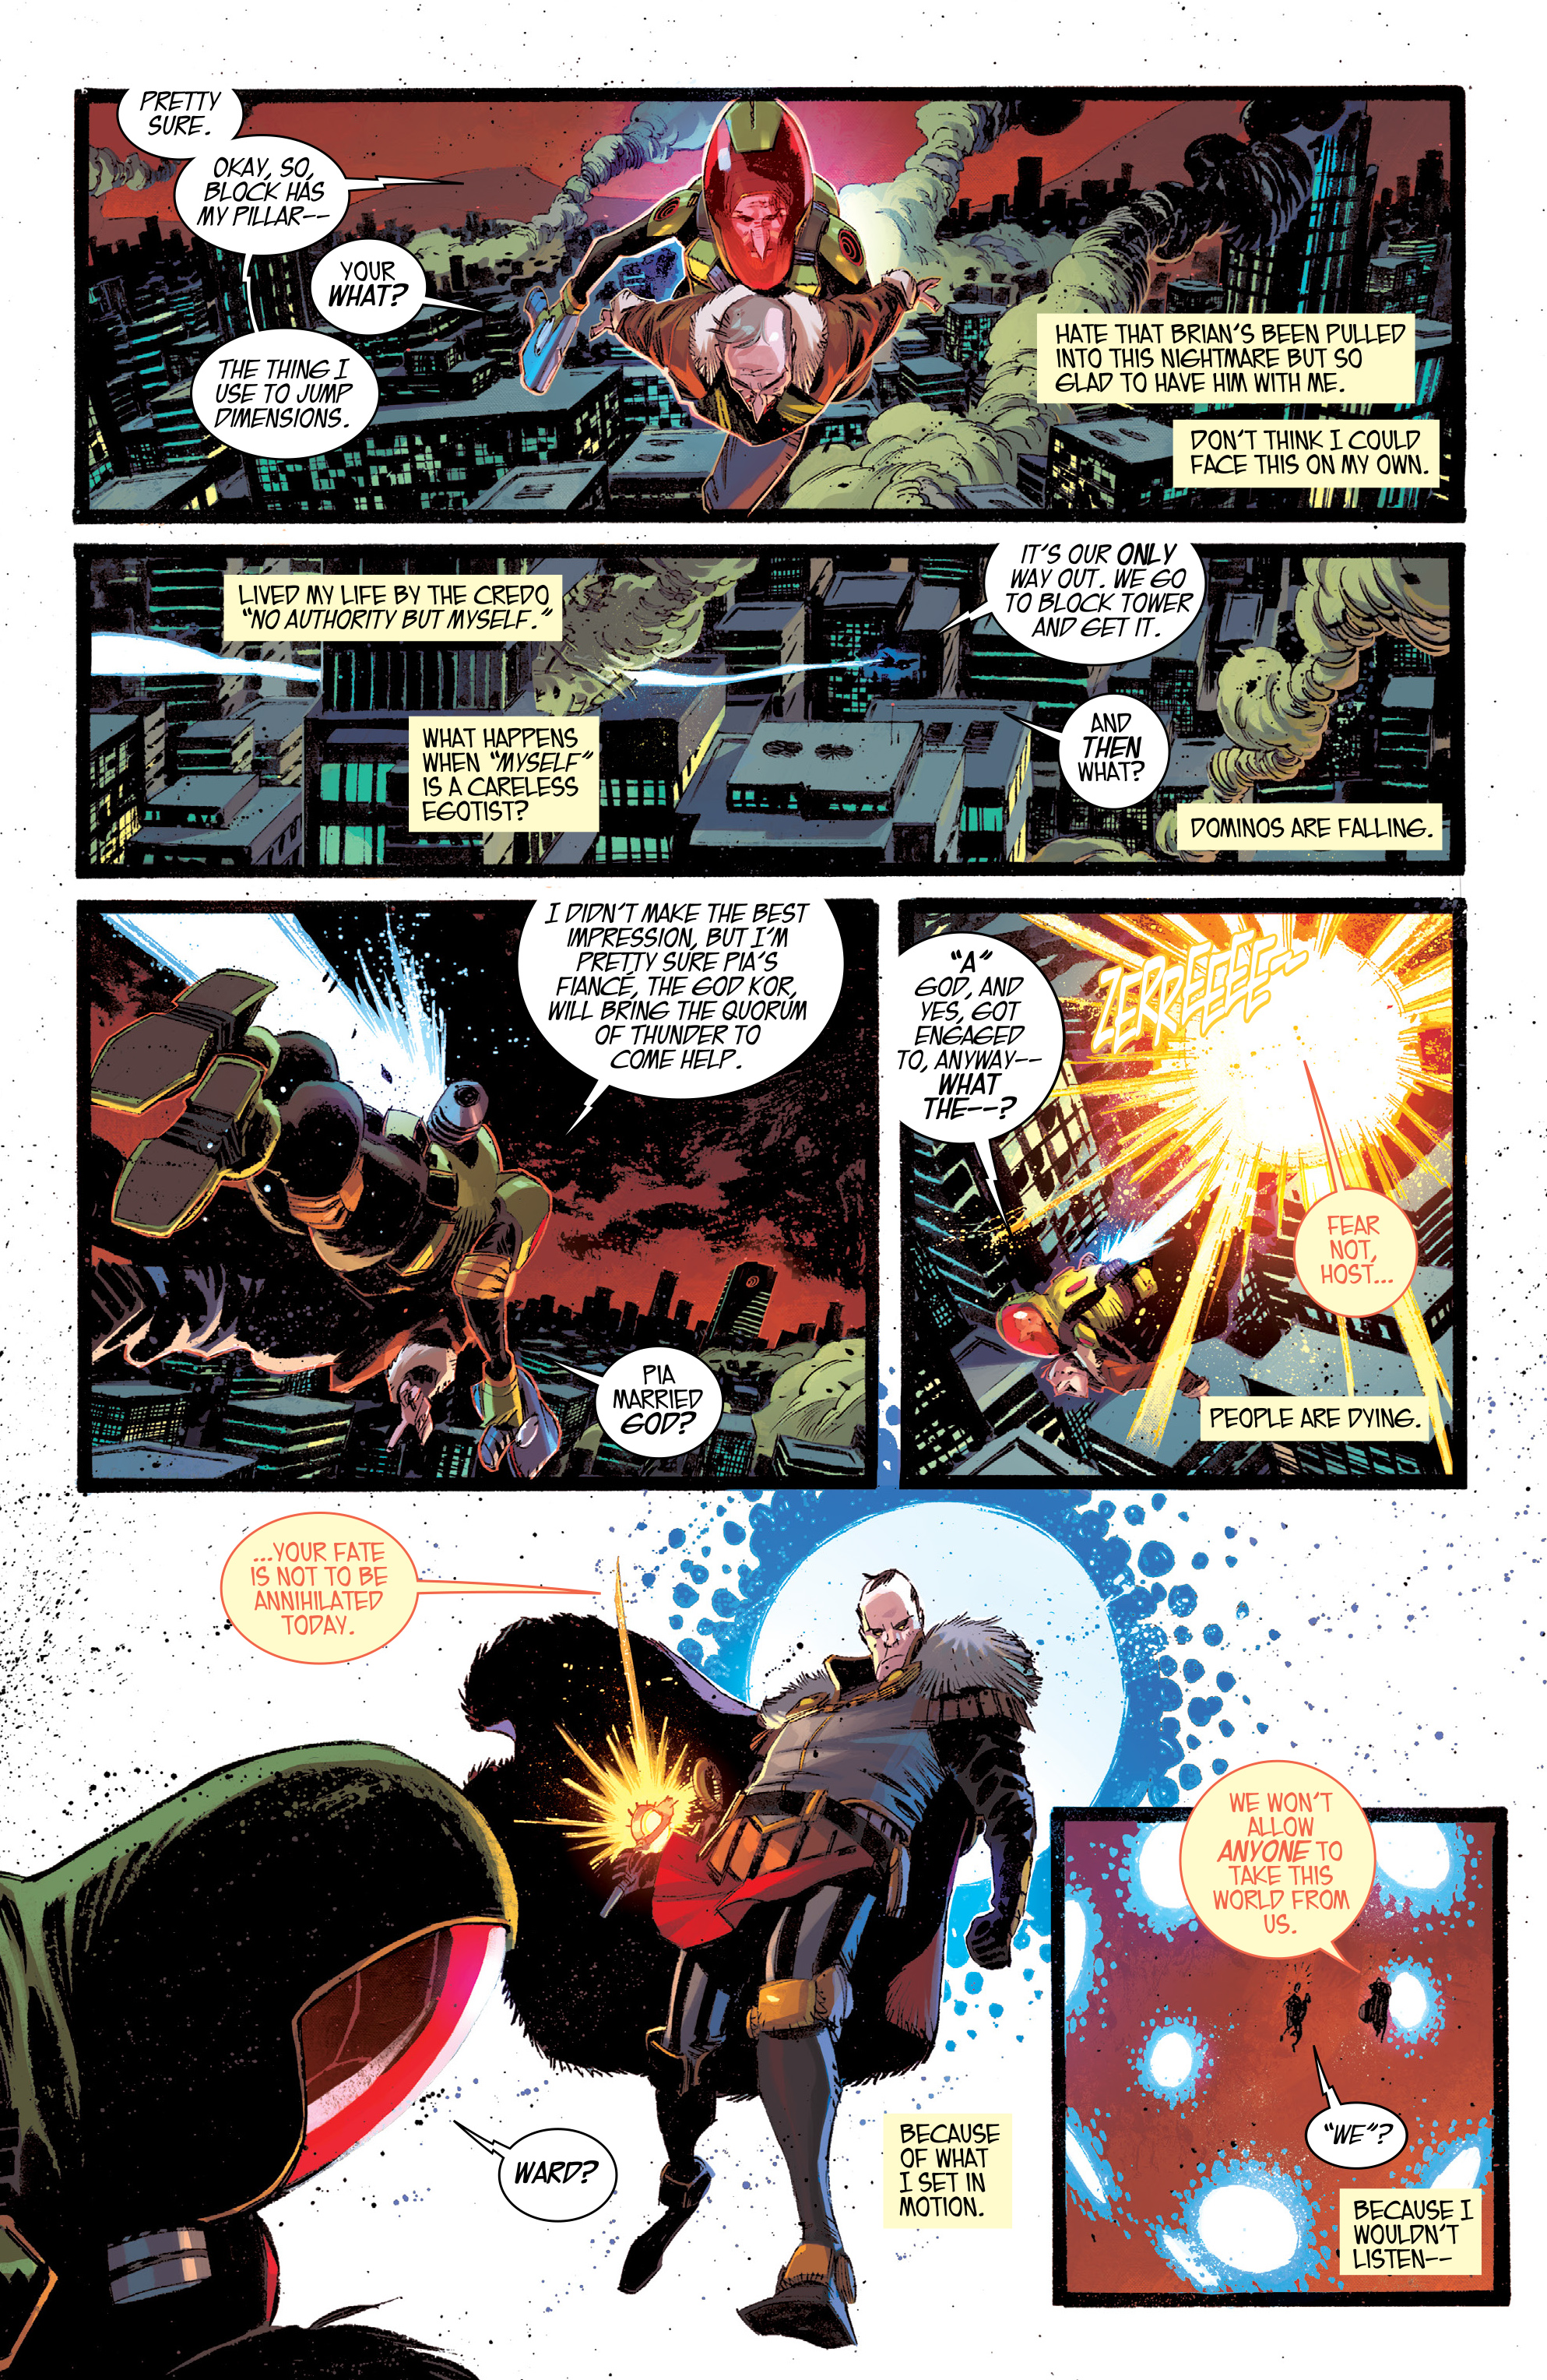 Read online Black Science comic -  Issue #30 - 15